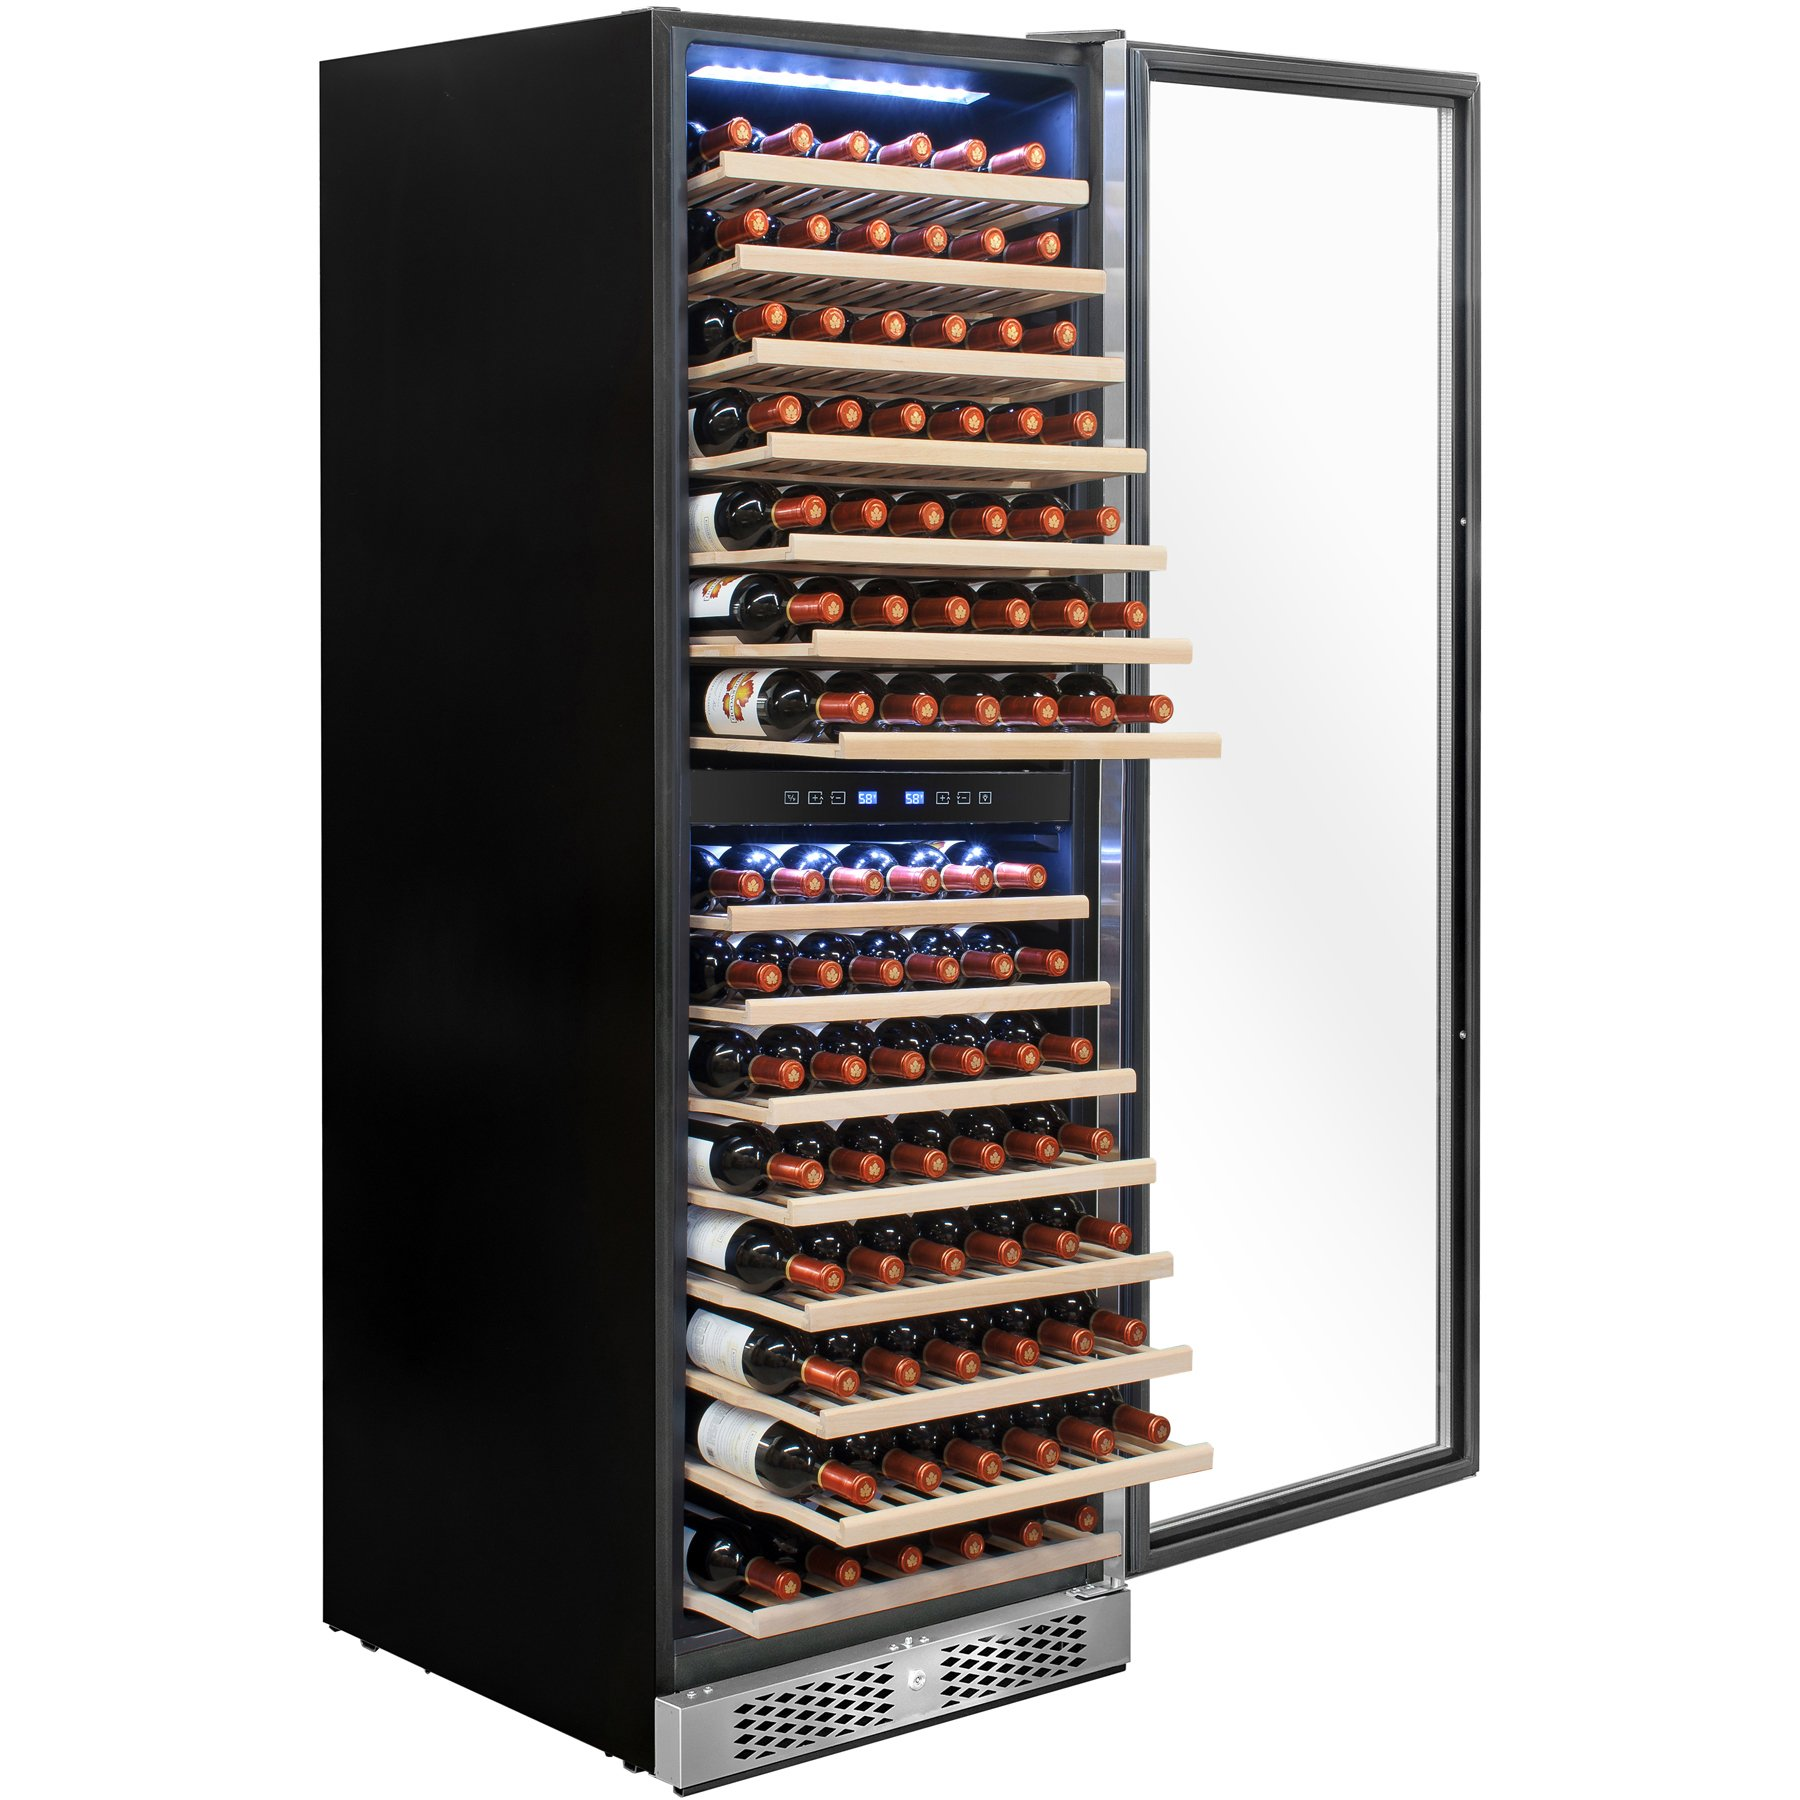 AKDY 160 Bottles Dual Zone Freestanding Touch Control Adjustable Wine Cooler Refrigerator w/Built-in Compressor